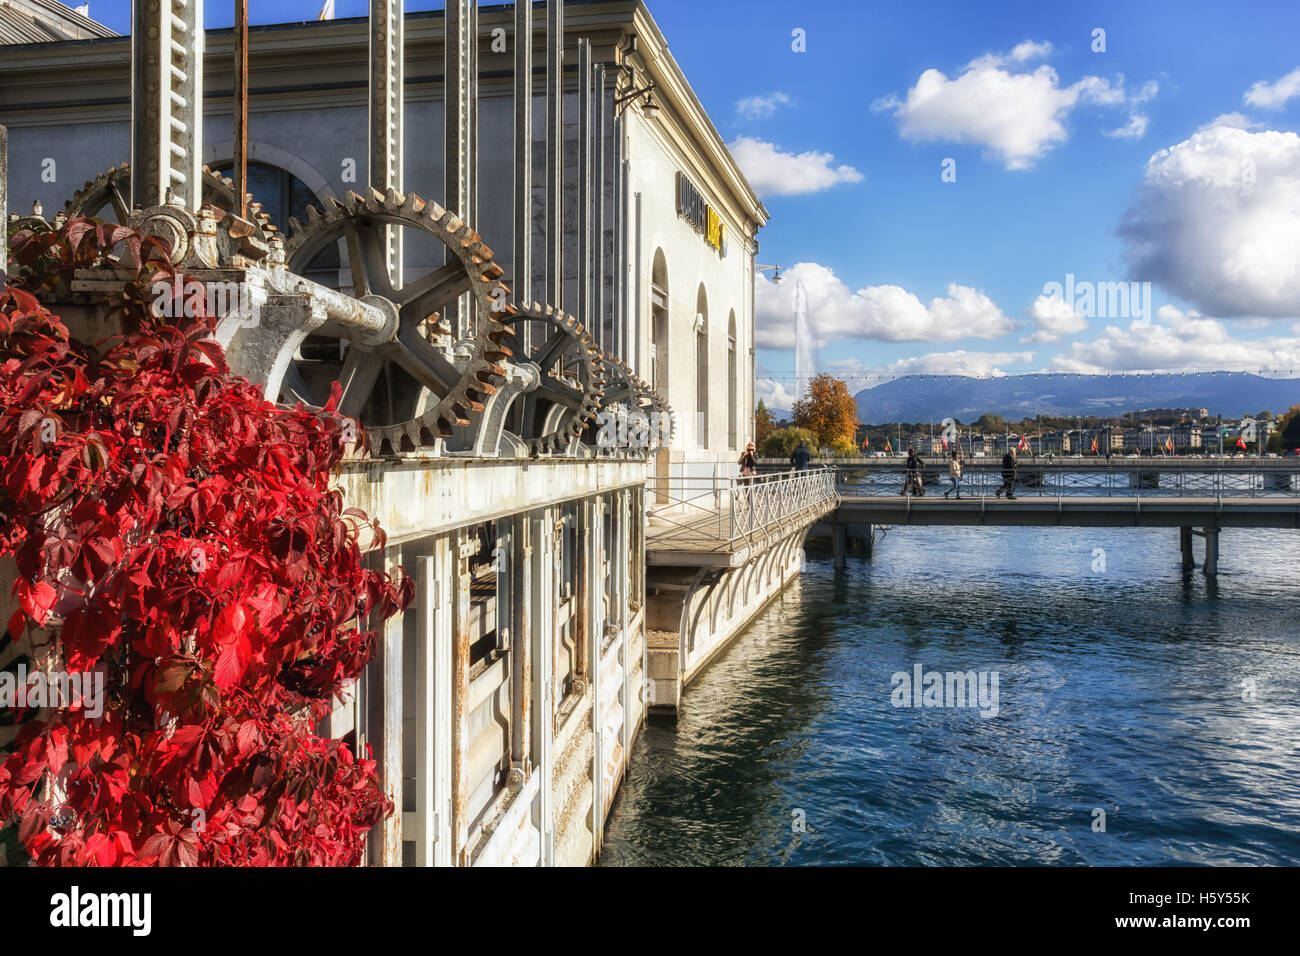 A view of the Geneva water jet from the building of the driving forces in Geneva, Switzerland. It is a tourist monument. - Stock Image